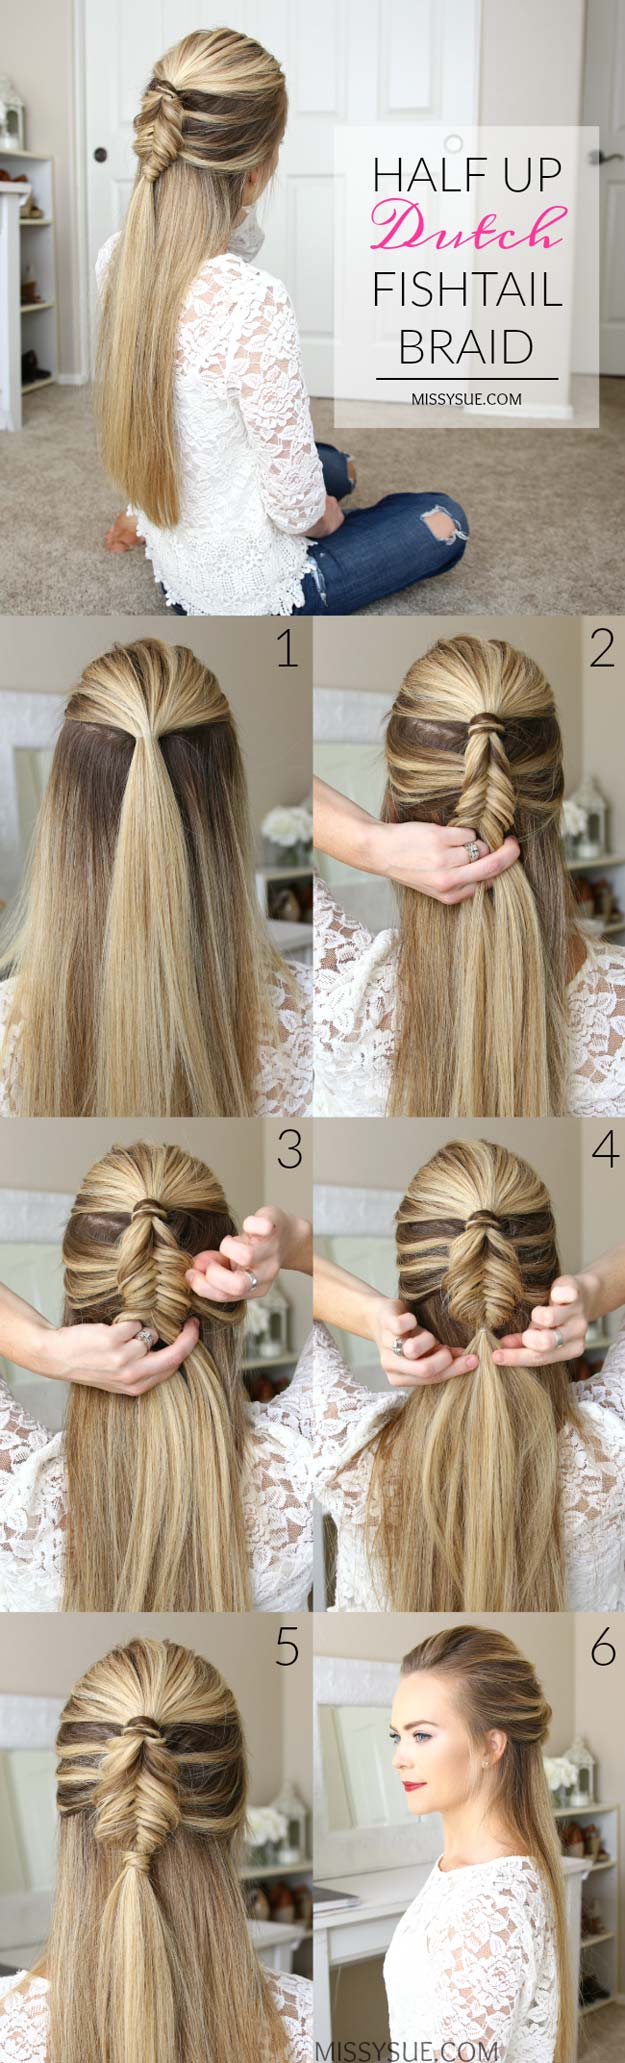 Best Hair Braiding Tutorials - Half Up Dutch Fishtail Braid - Easy Step by Step Tutorials for Braids - How To Braid Fishtail, French Braids, Flower Crown, Side Braids, Cornrows, Updos - Cool Braided Hairstyles for Girls, Teens and Women - School, Day and Evening, Boho, Casual and Formal Looks http://diyprojectsforteens.com/hair-braiding-tutorials